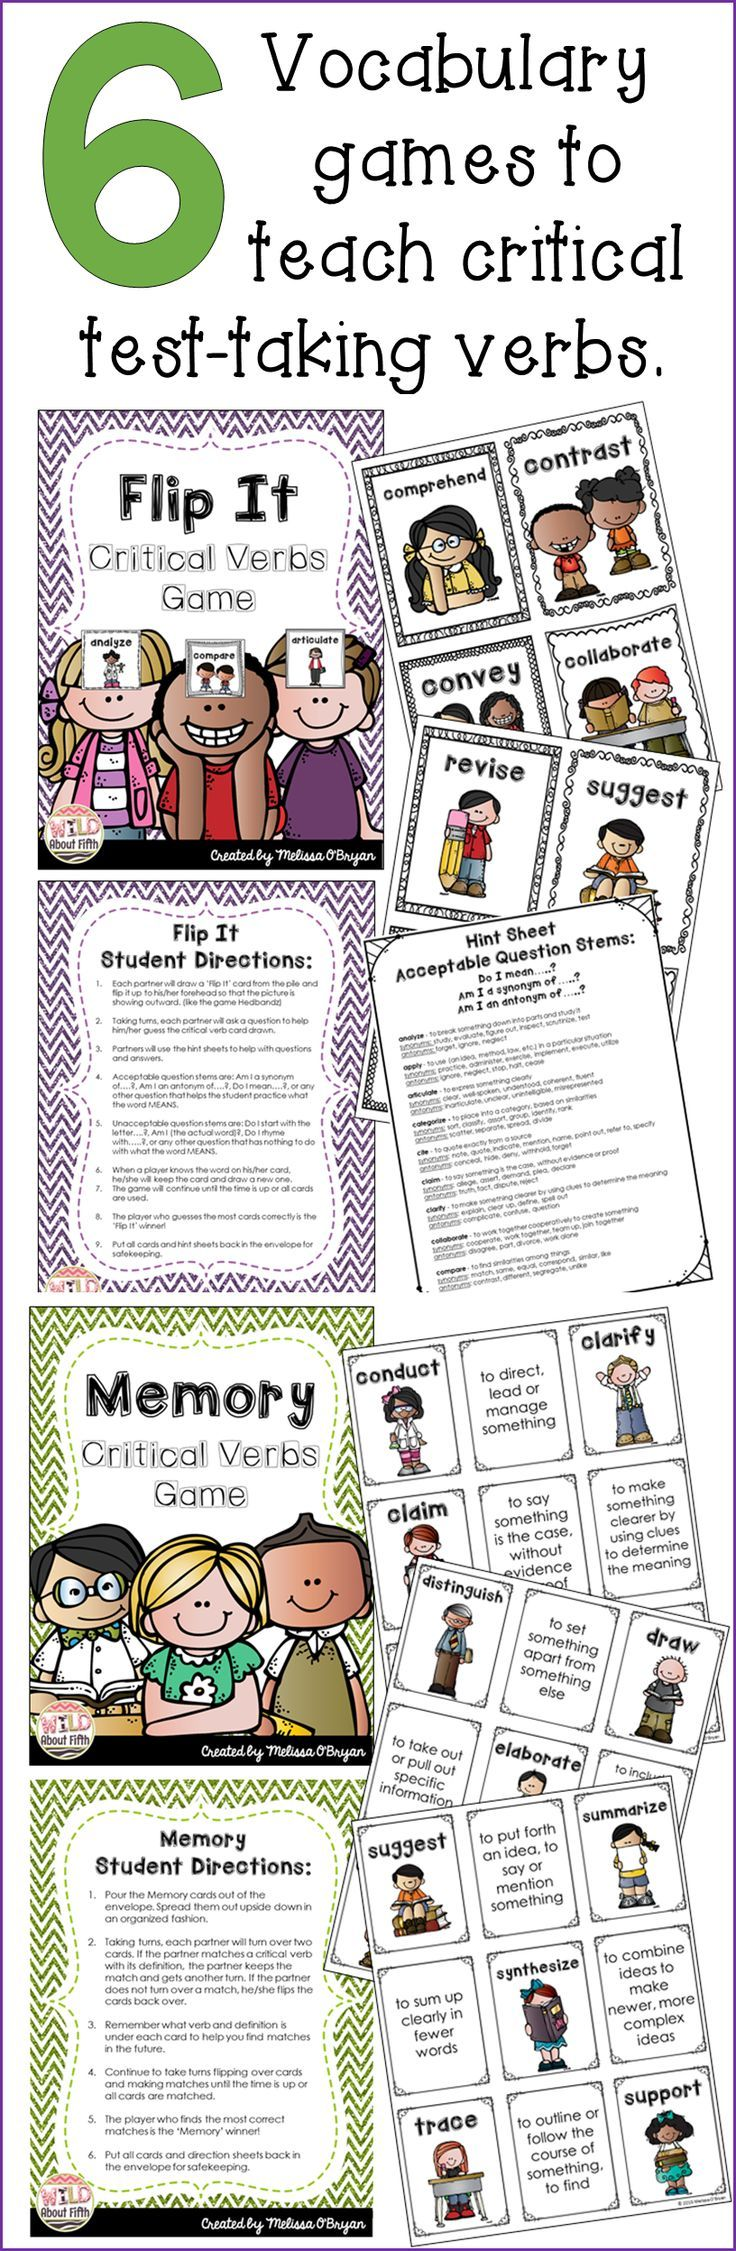 If your students are struggling with understanding the critical verbs in the Common Core Standards this product is a MUST HAVE! These verbs are tricky and students cannot perform well on THE TEST if they don't know what the questions are asking them to do!!! You must expose your students to these critical academic vocabulary words. And what better way to do that then to play fun, engaging vocabulary games!